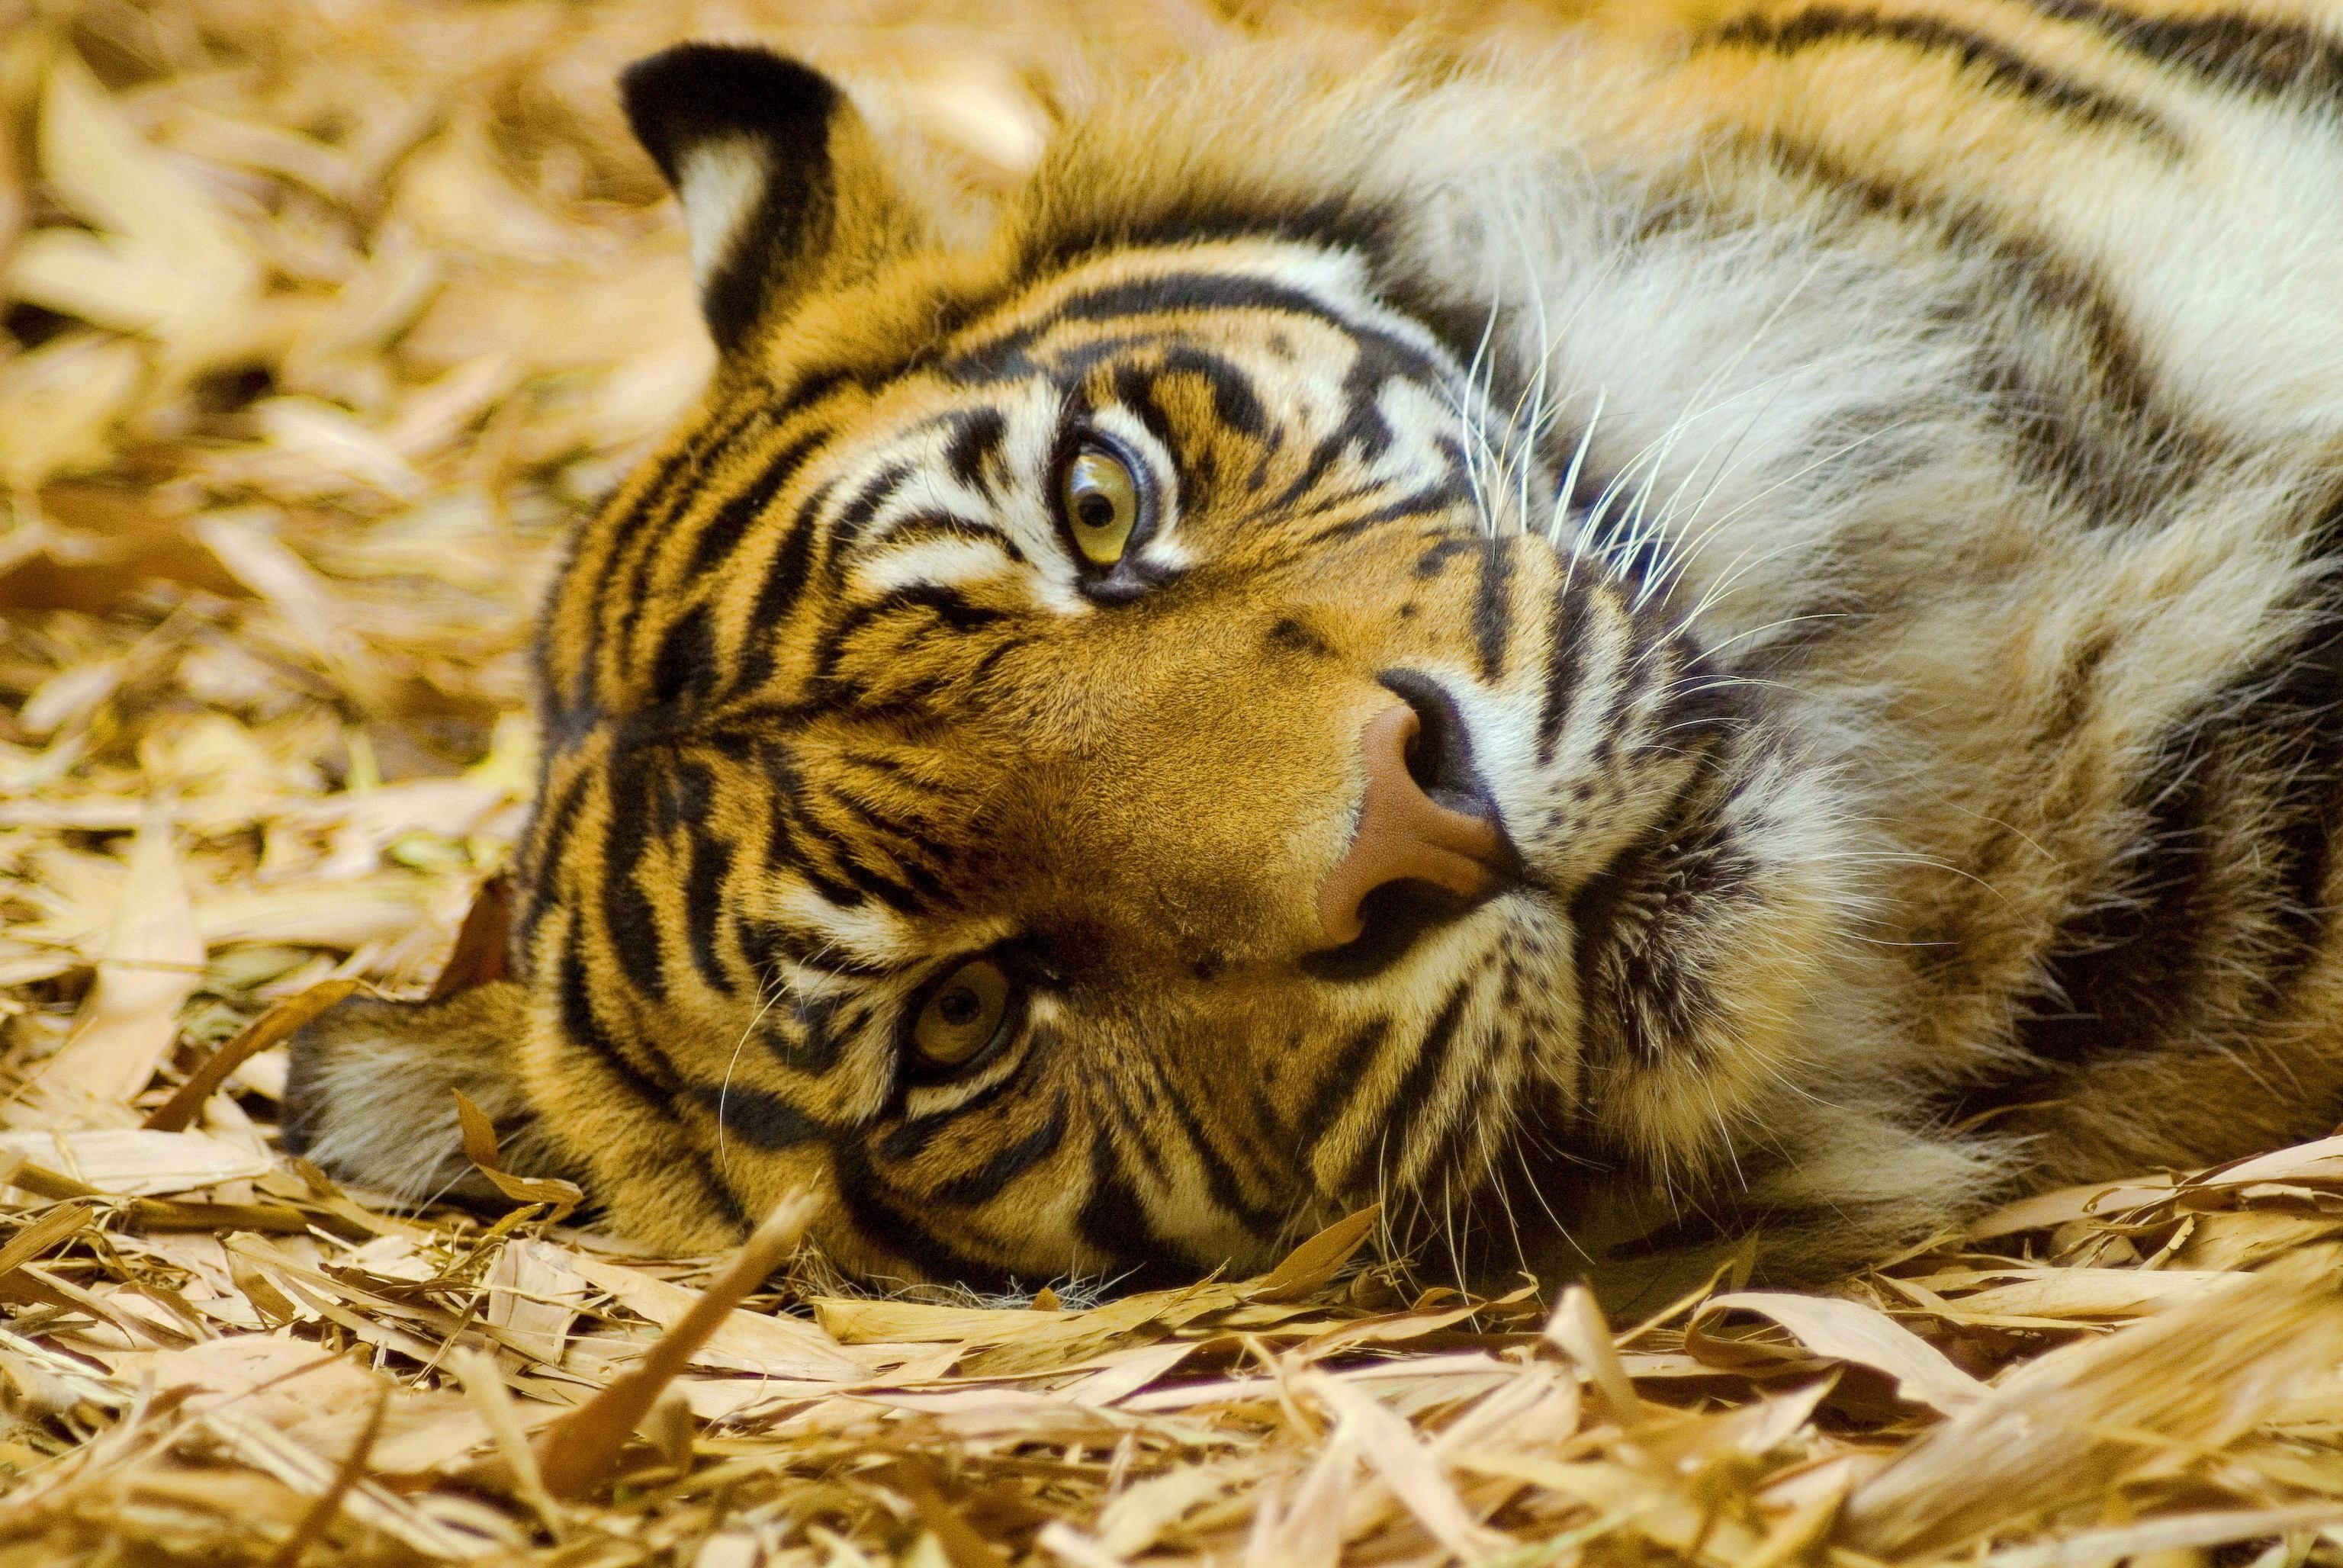 58326 download wallpaper Animals, Tiger, Muzzle, Hay, To Lie Down, Lie screensavers and pictures for free